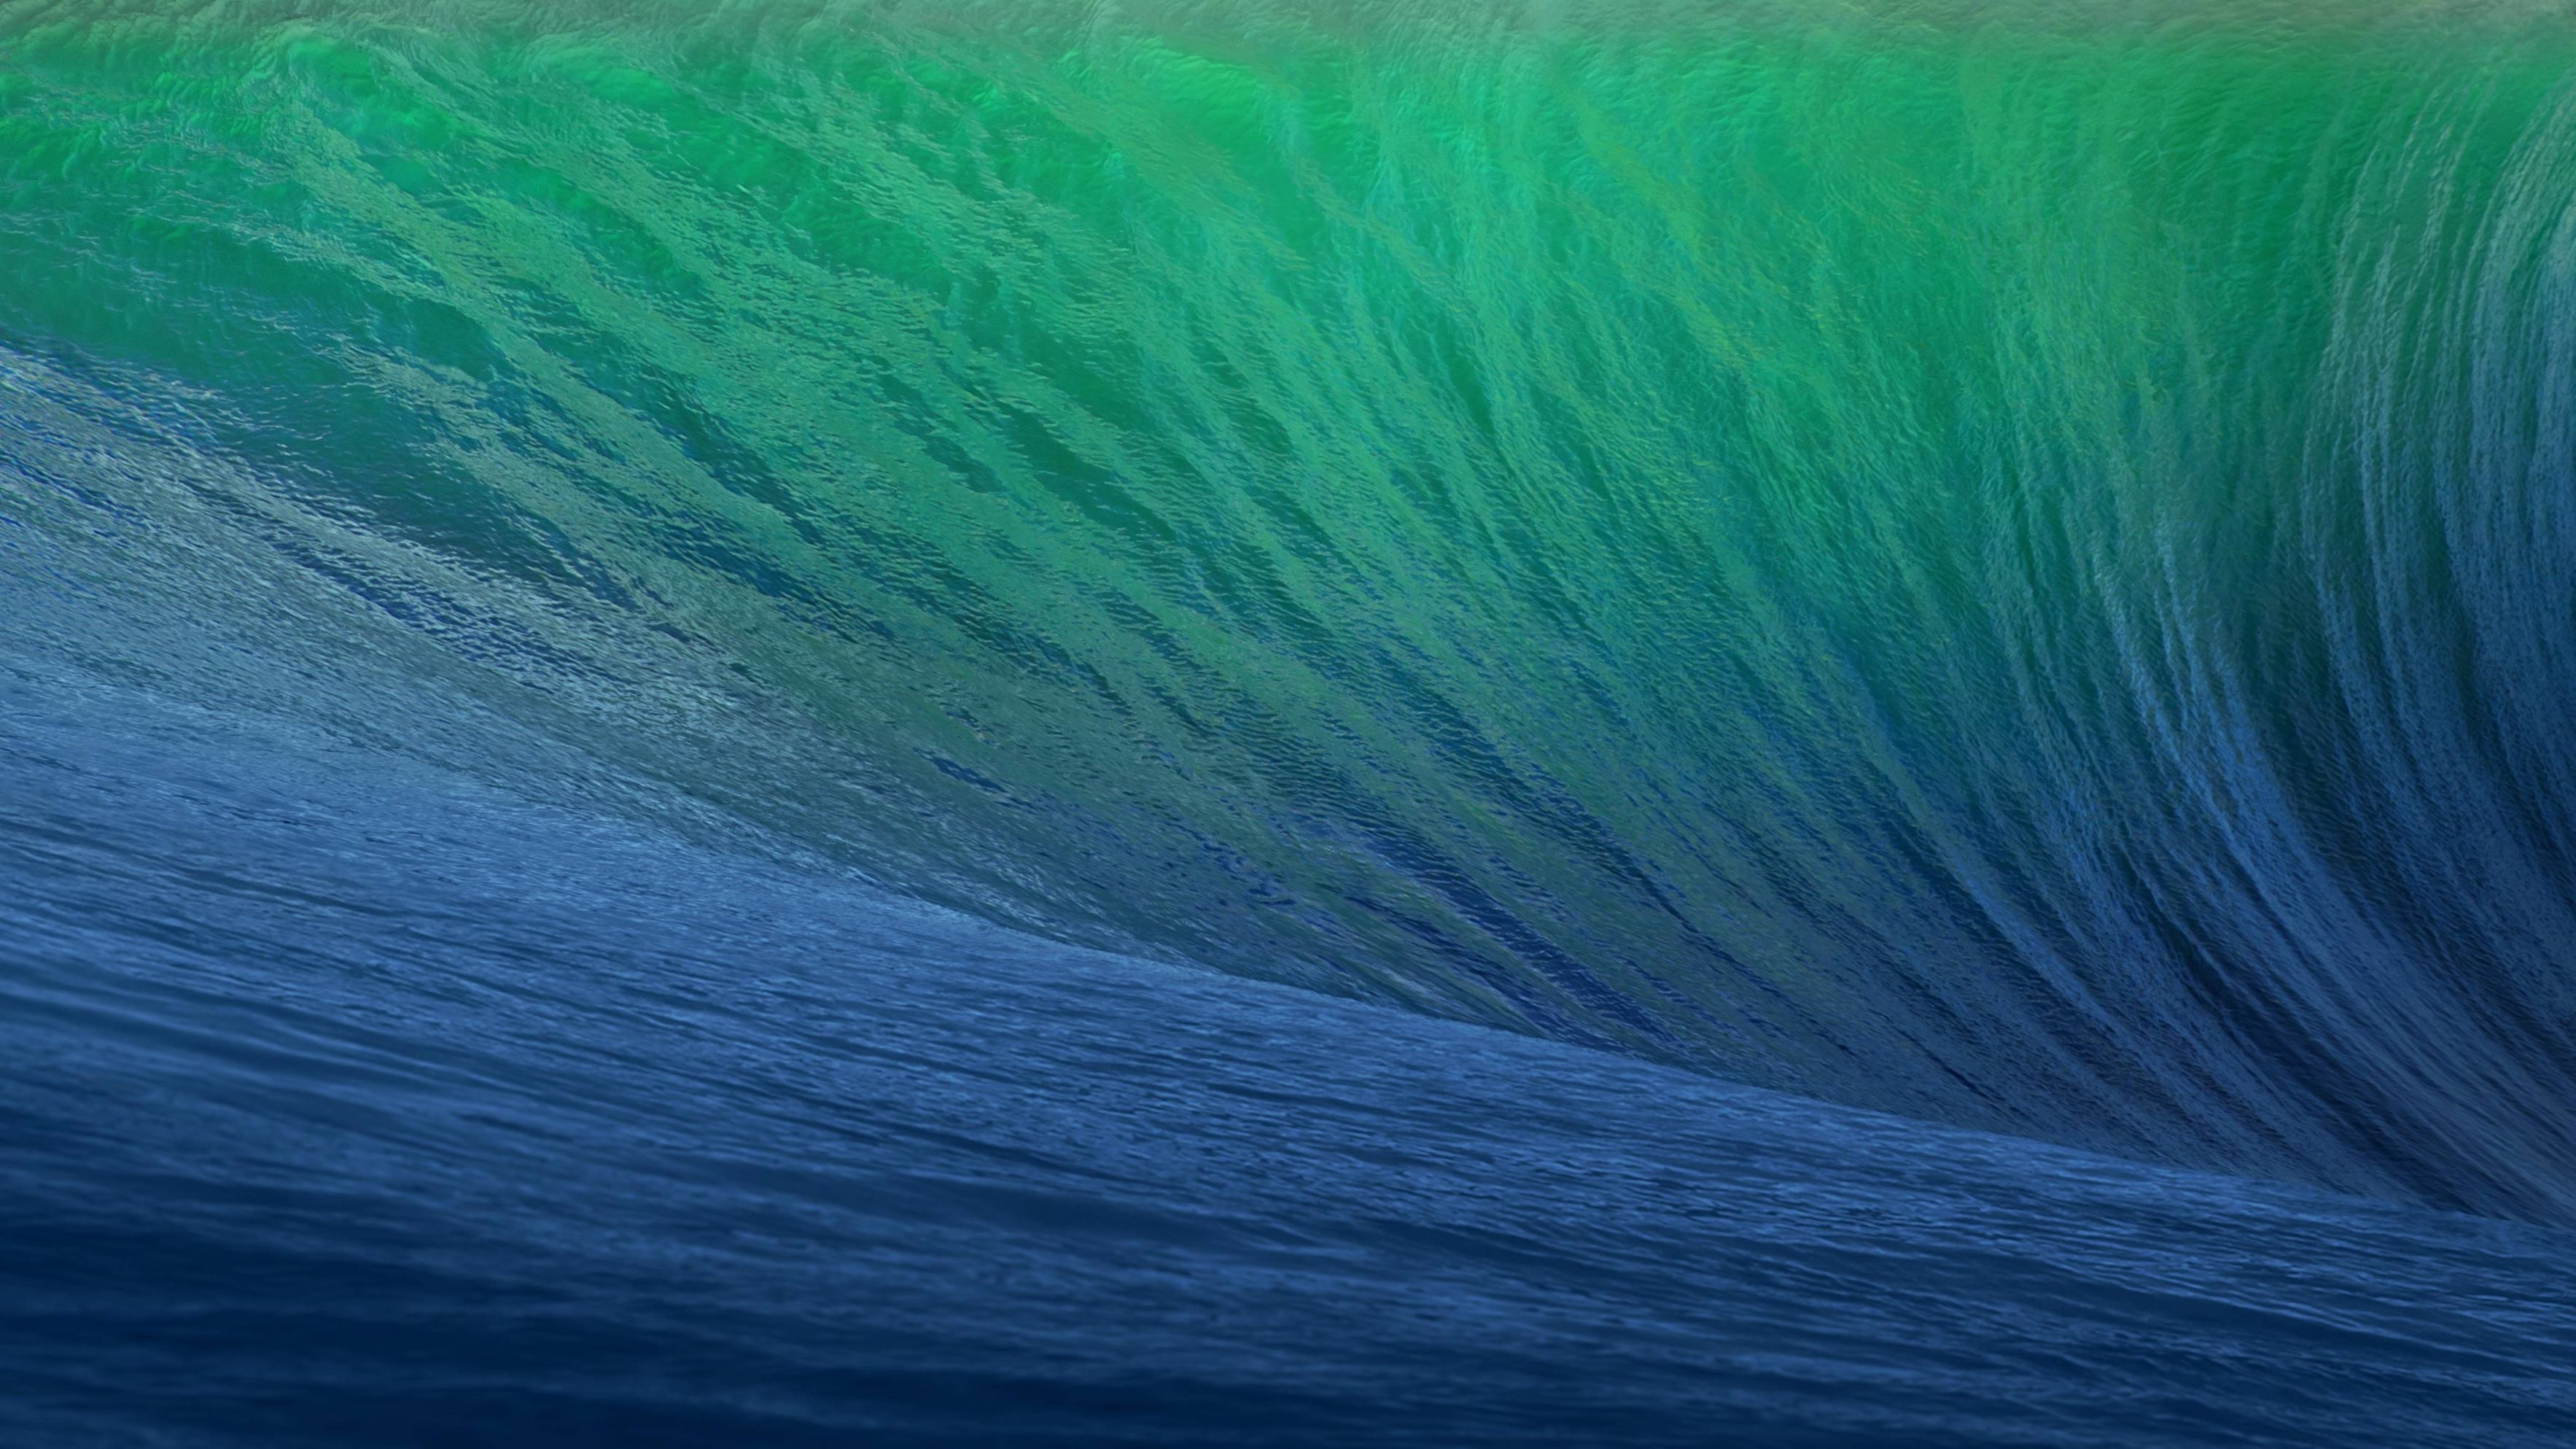 Mavericks desktop background picture settings moved from Library 3533x1987